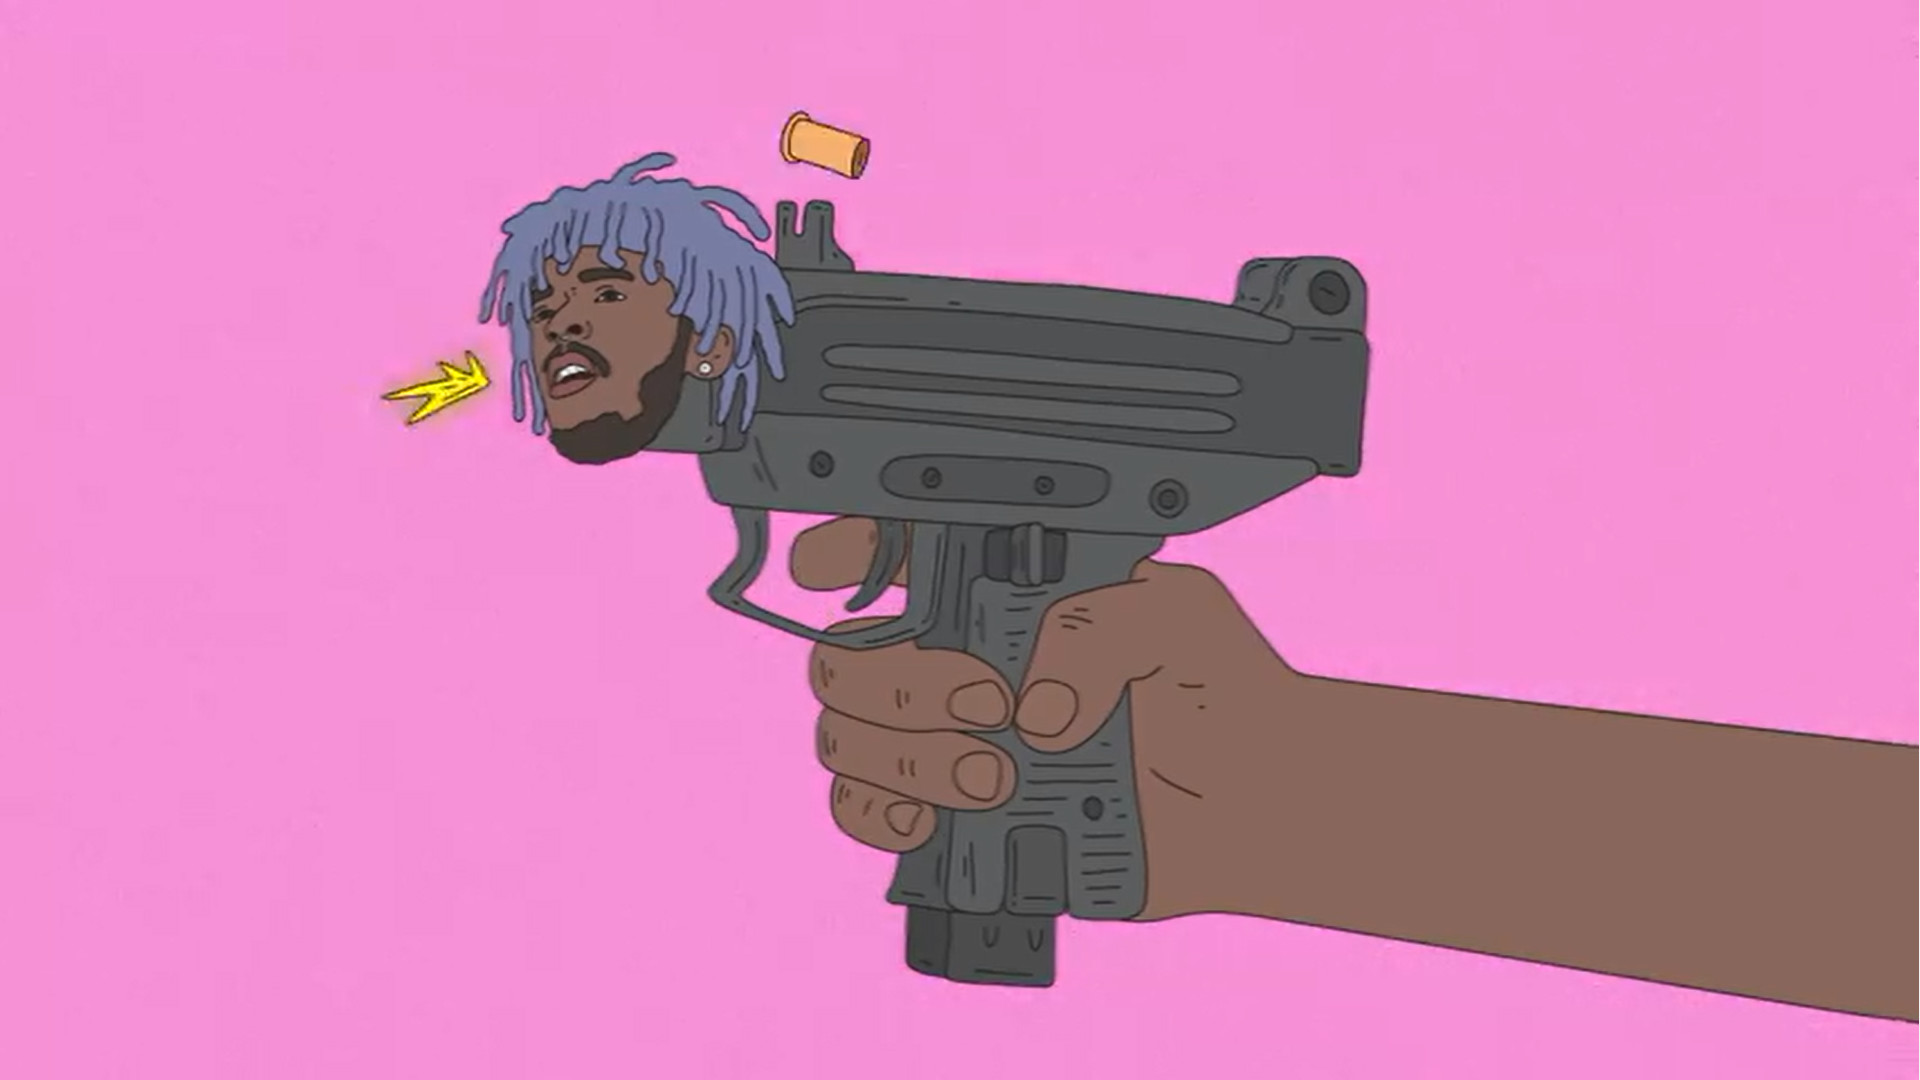 Lil Uzi Vert 2018 Wallpapers (68+ background pictures)